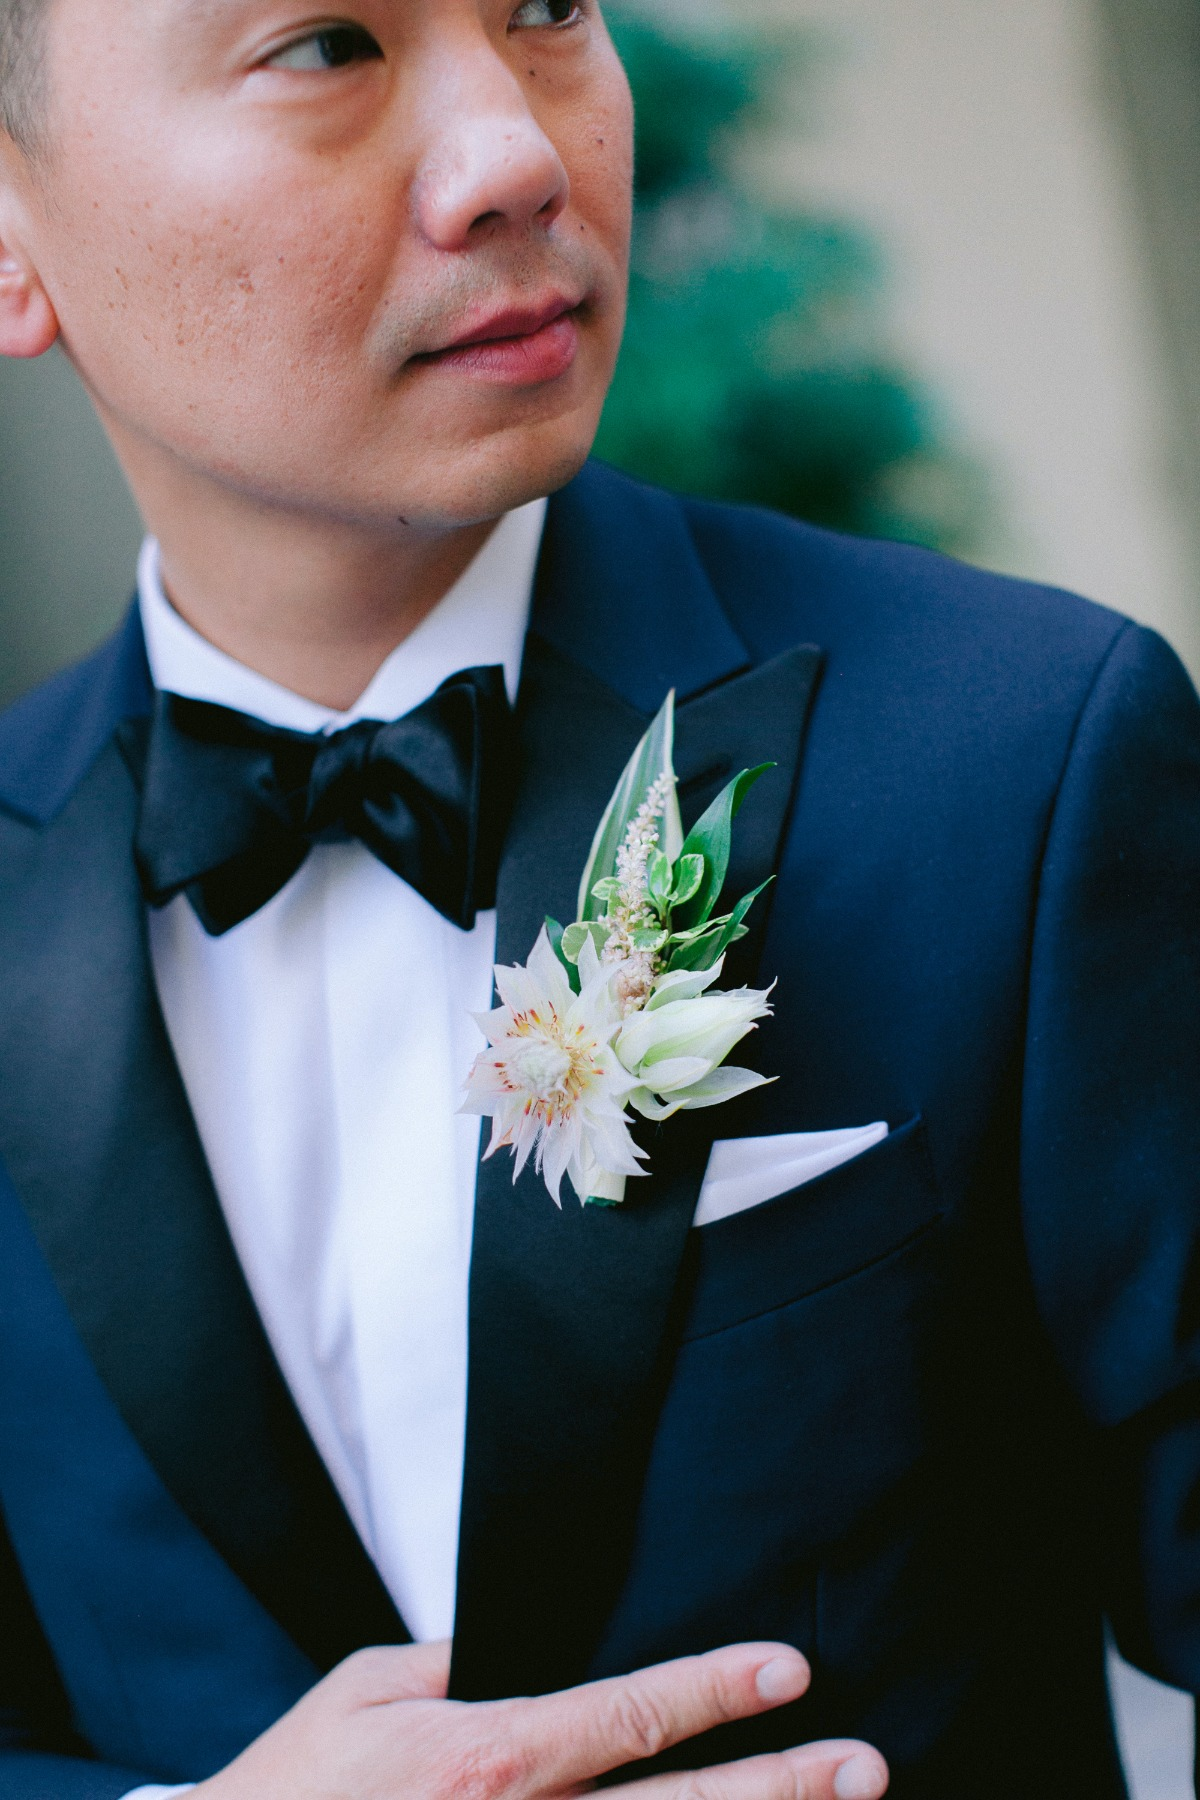 tropical boutonnière for groom